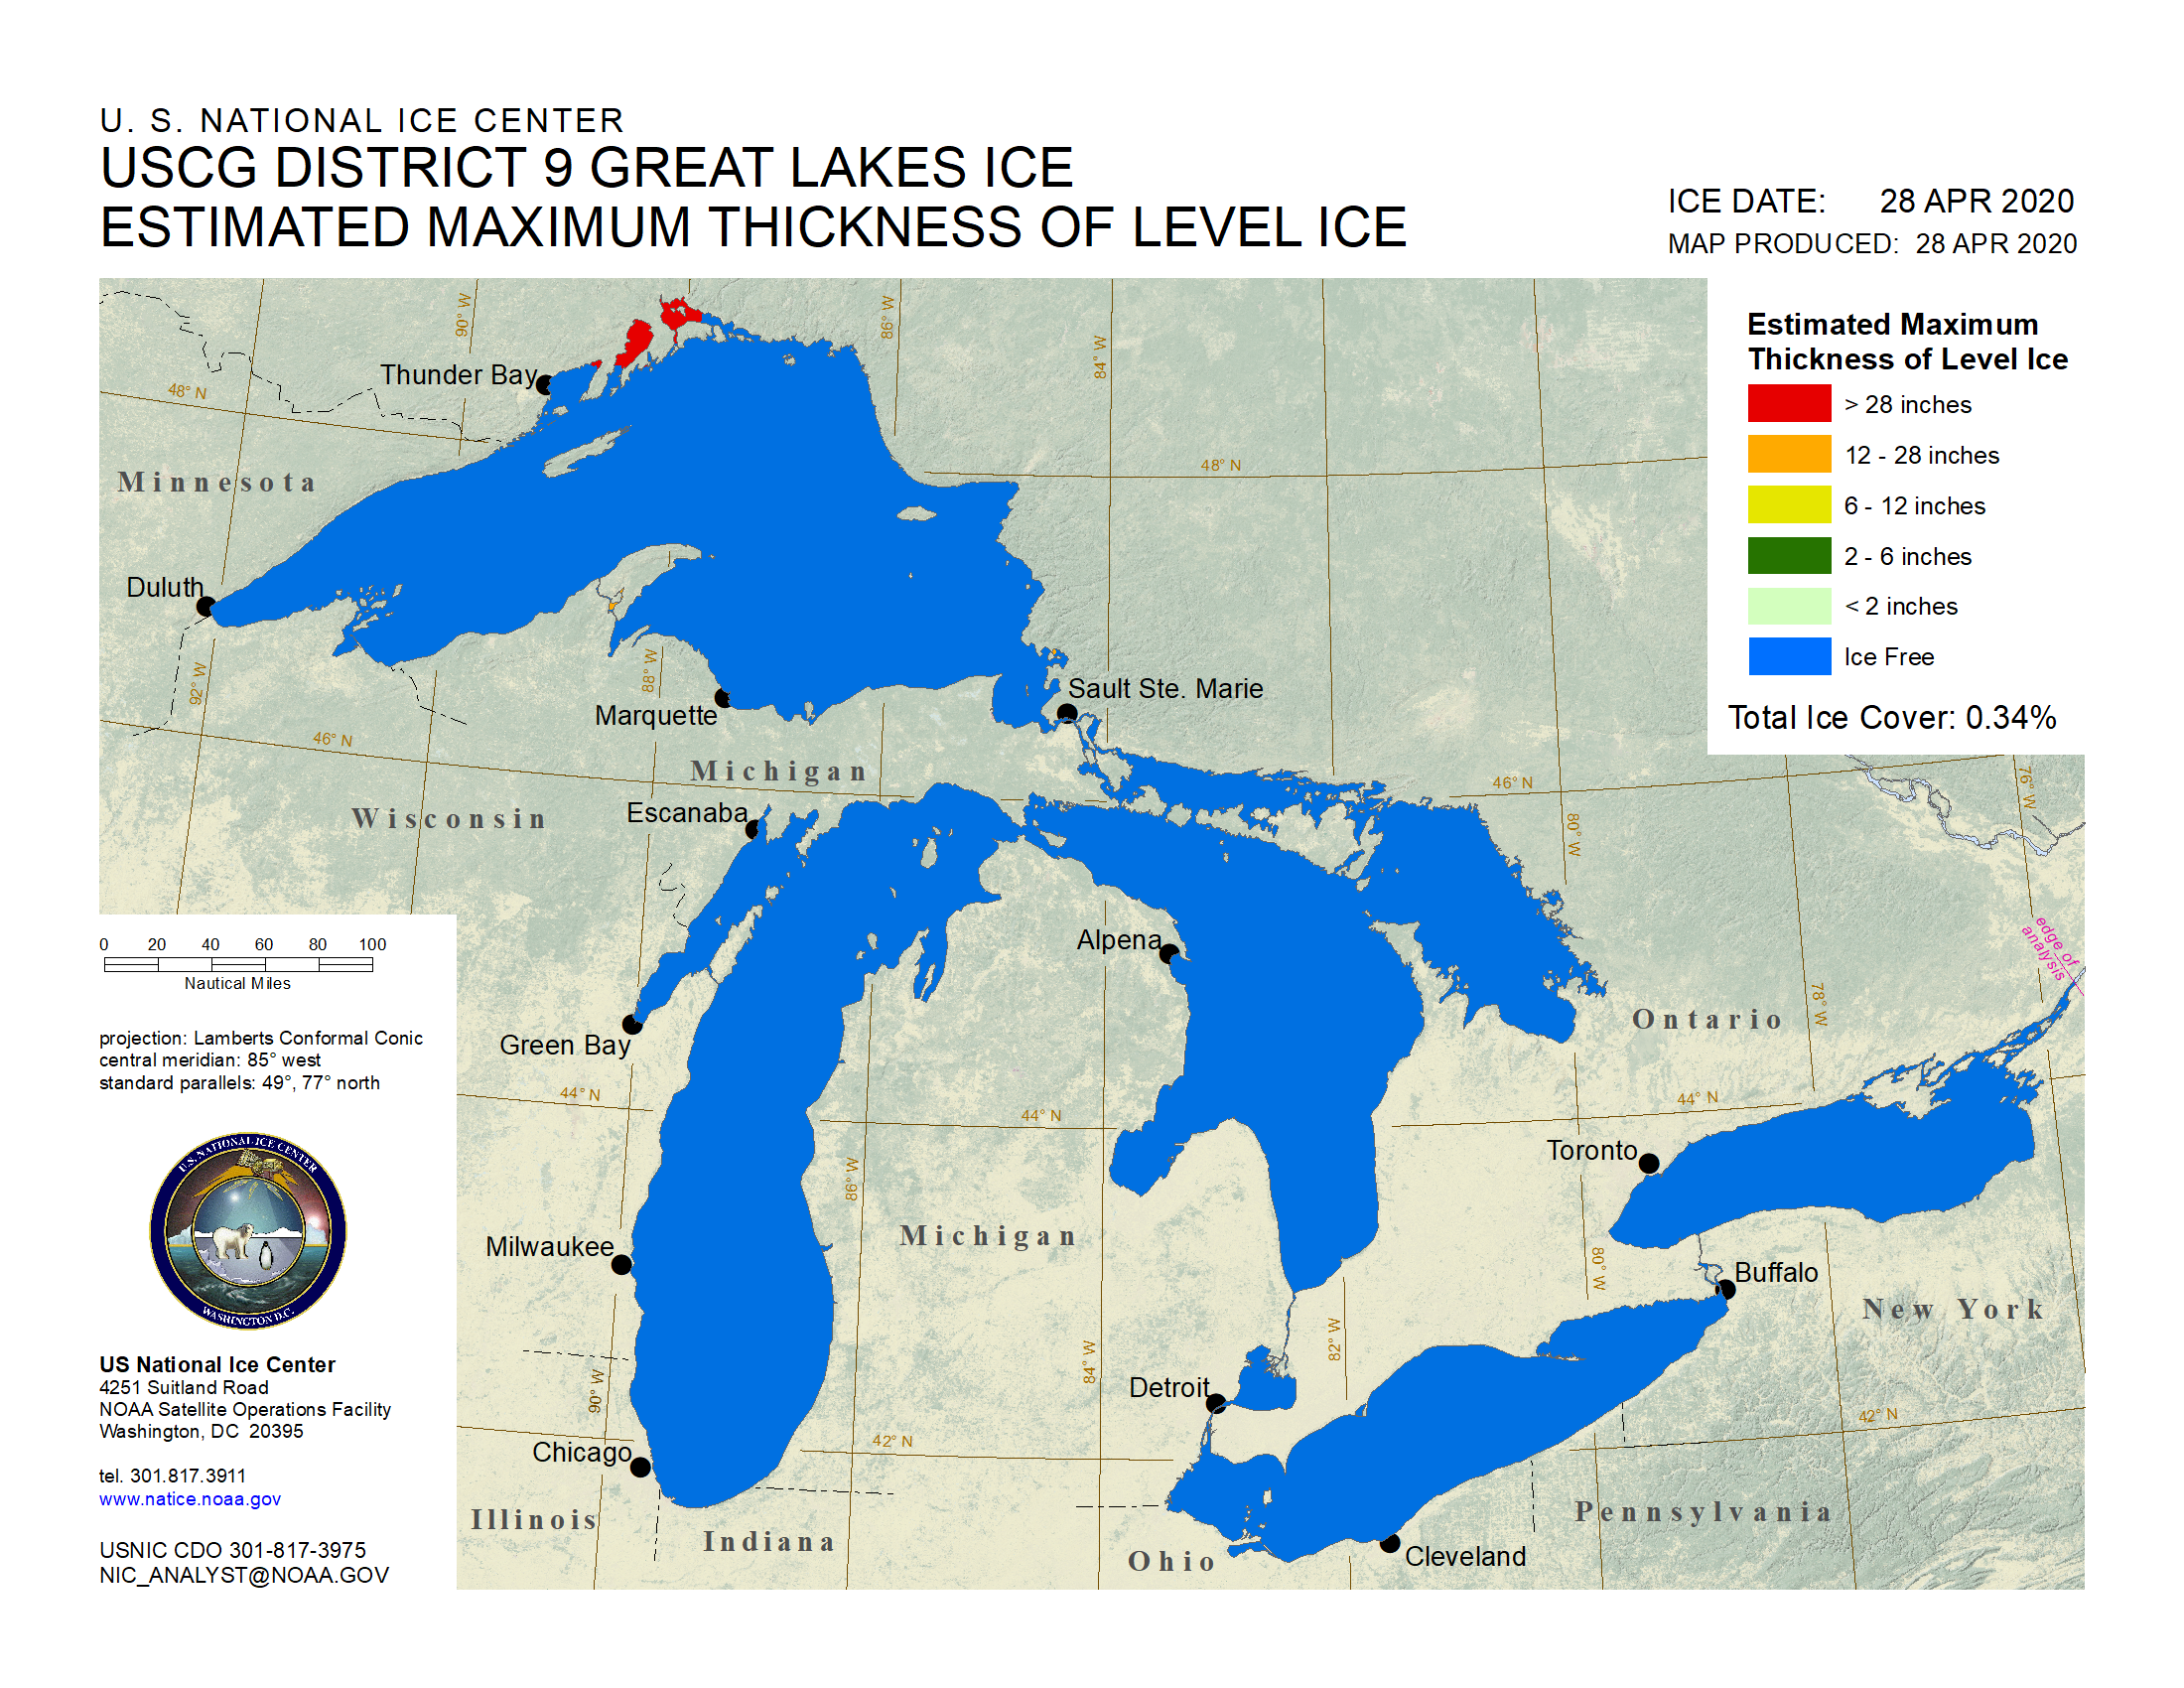 Great Lakes Ice - Thickness